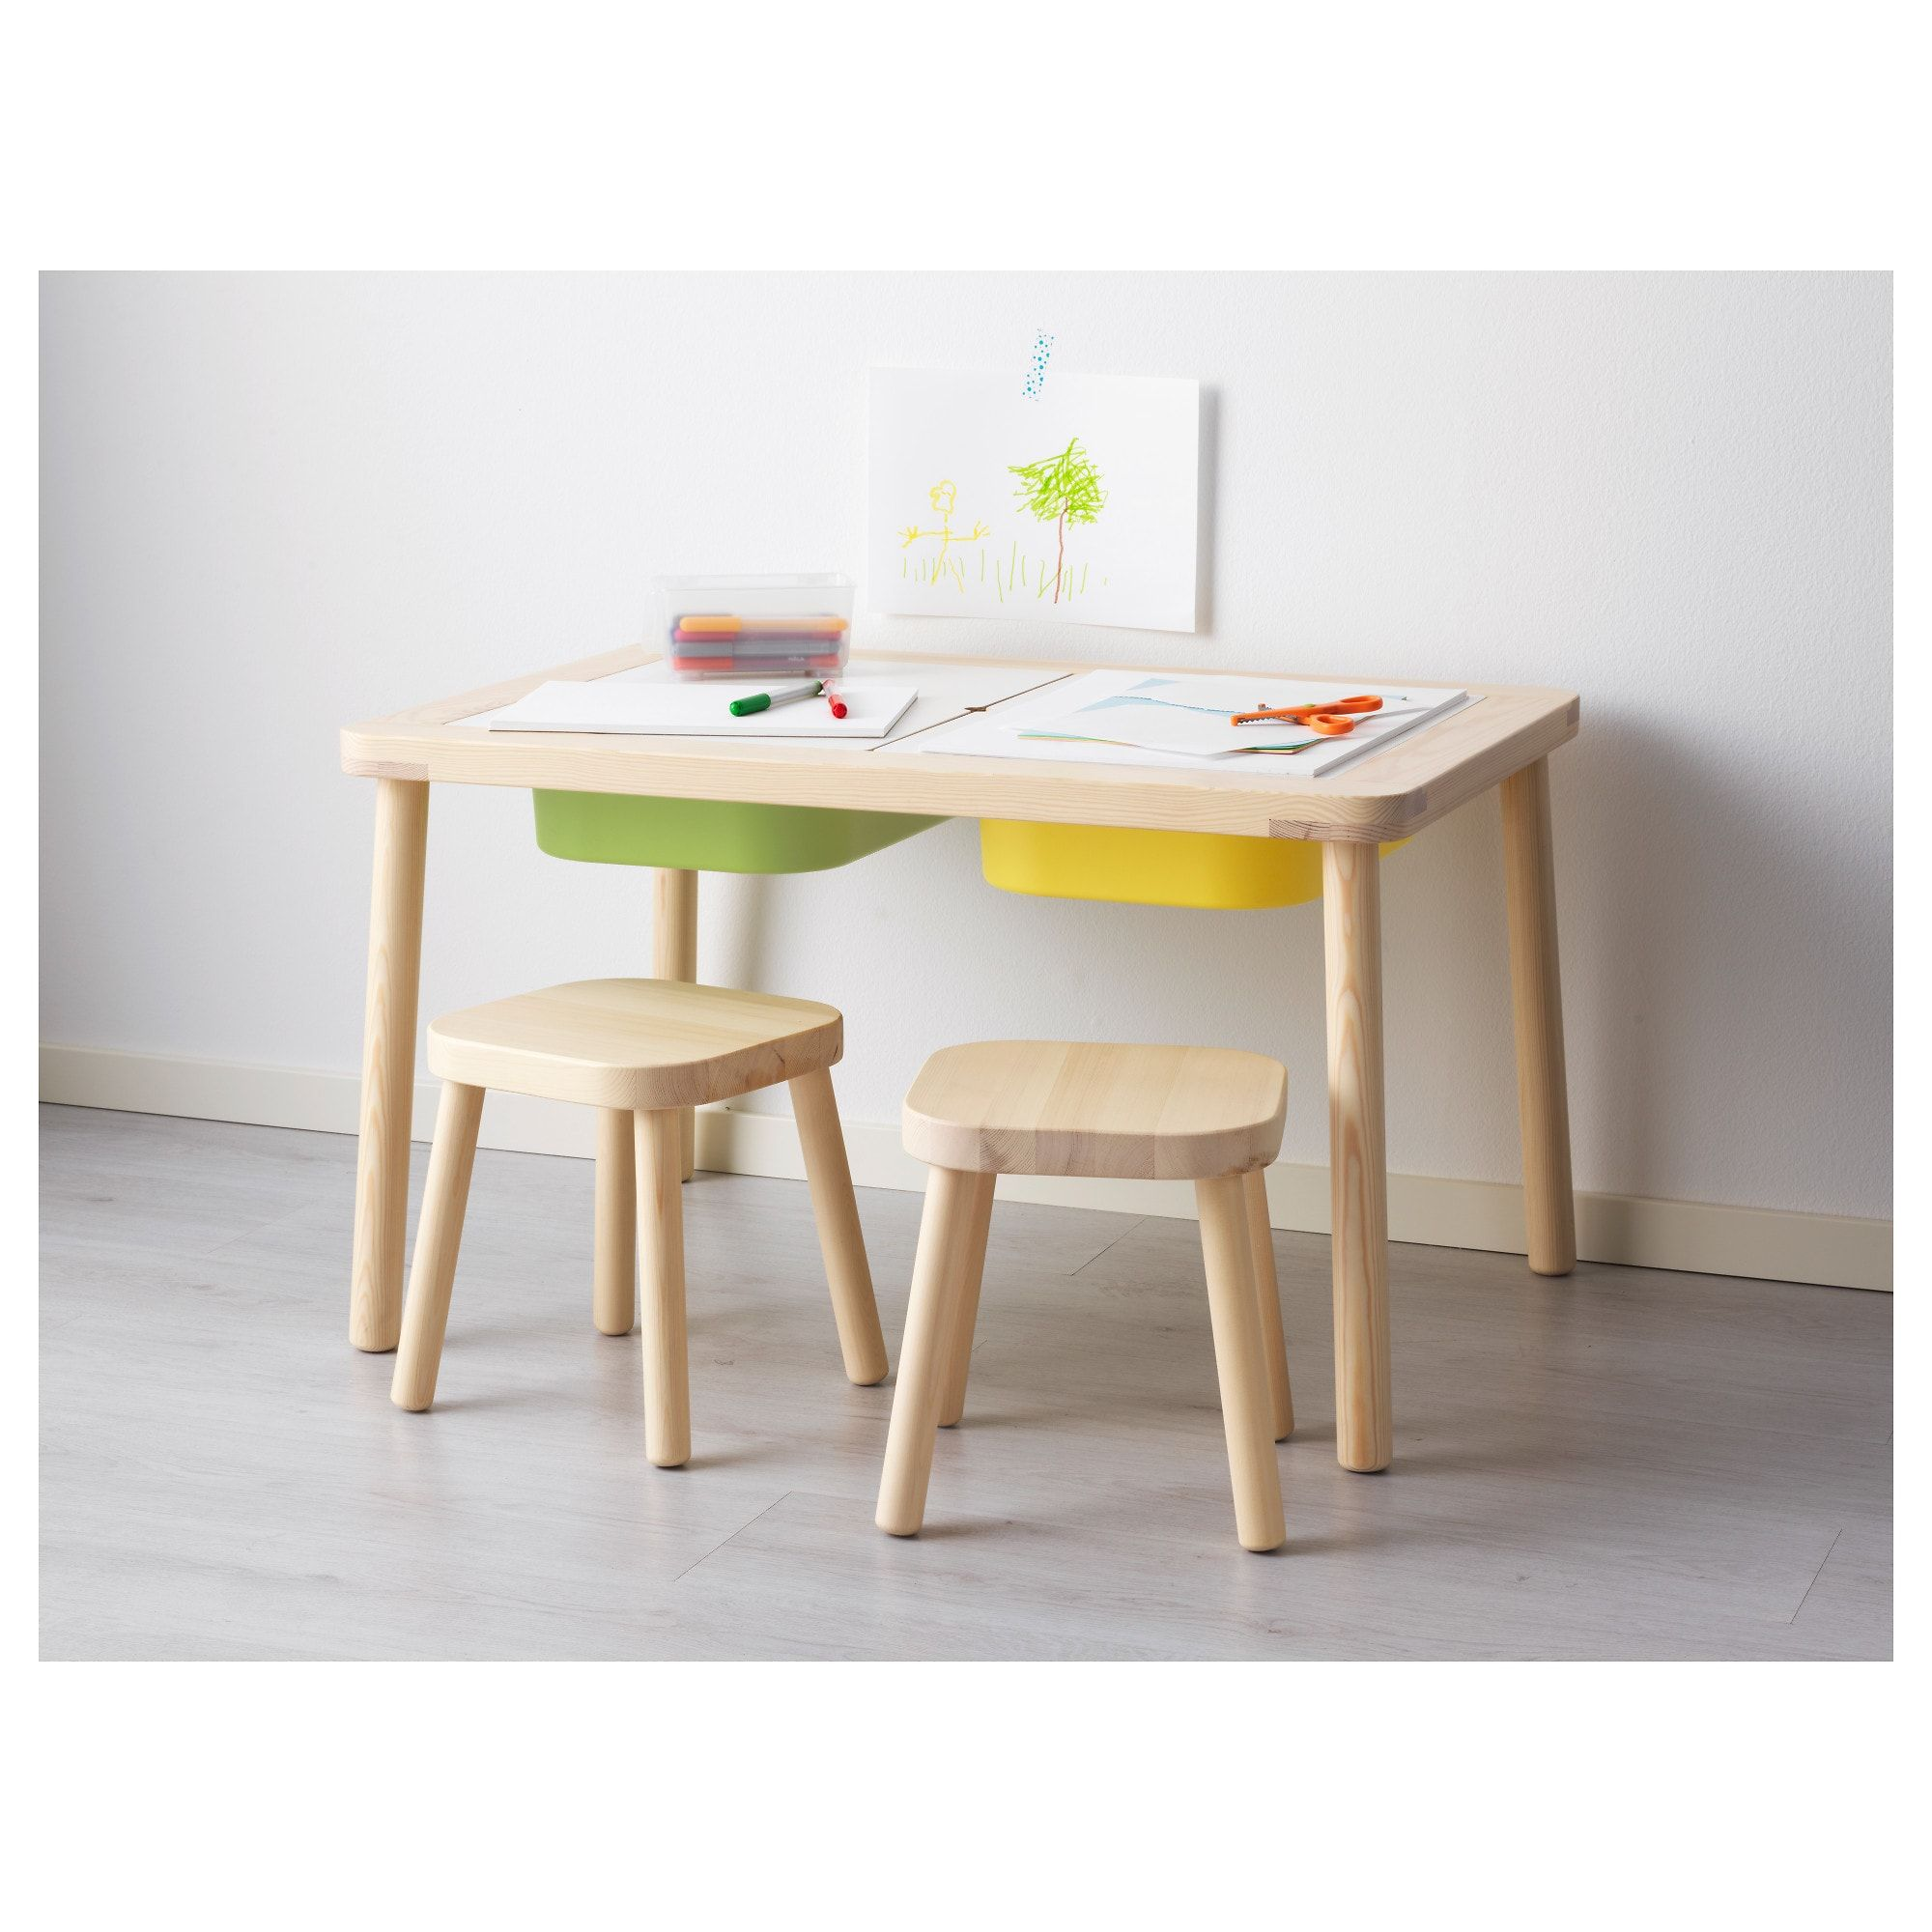 Phenomenal Ikea Flisat Childrens Table In 2019 Svit Sobica Ikea Gmtry Best Dining Table And Chair Ideas Images Gmtryco